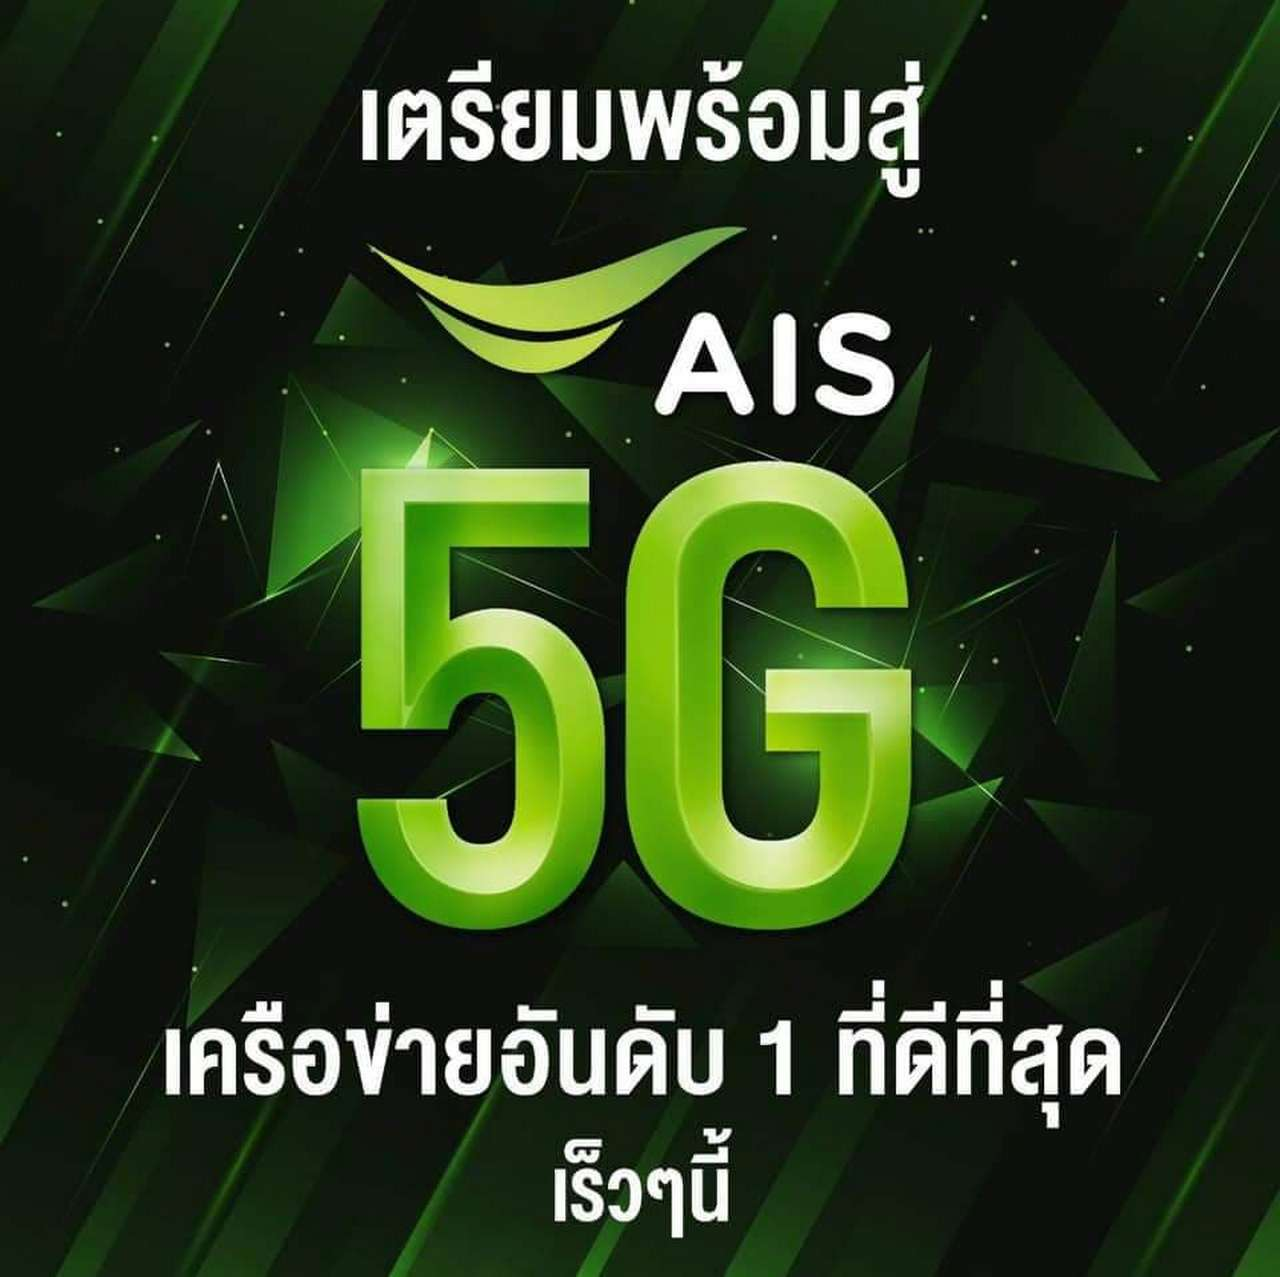 AIS wins the bidding for 5G, seizing the most waves